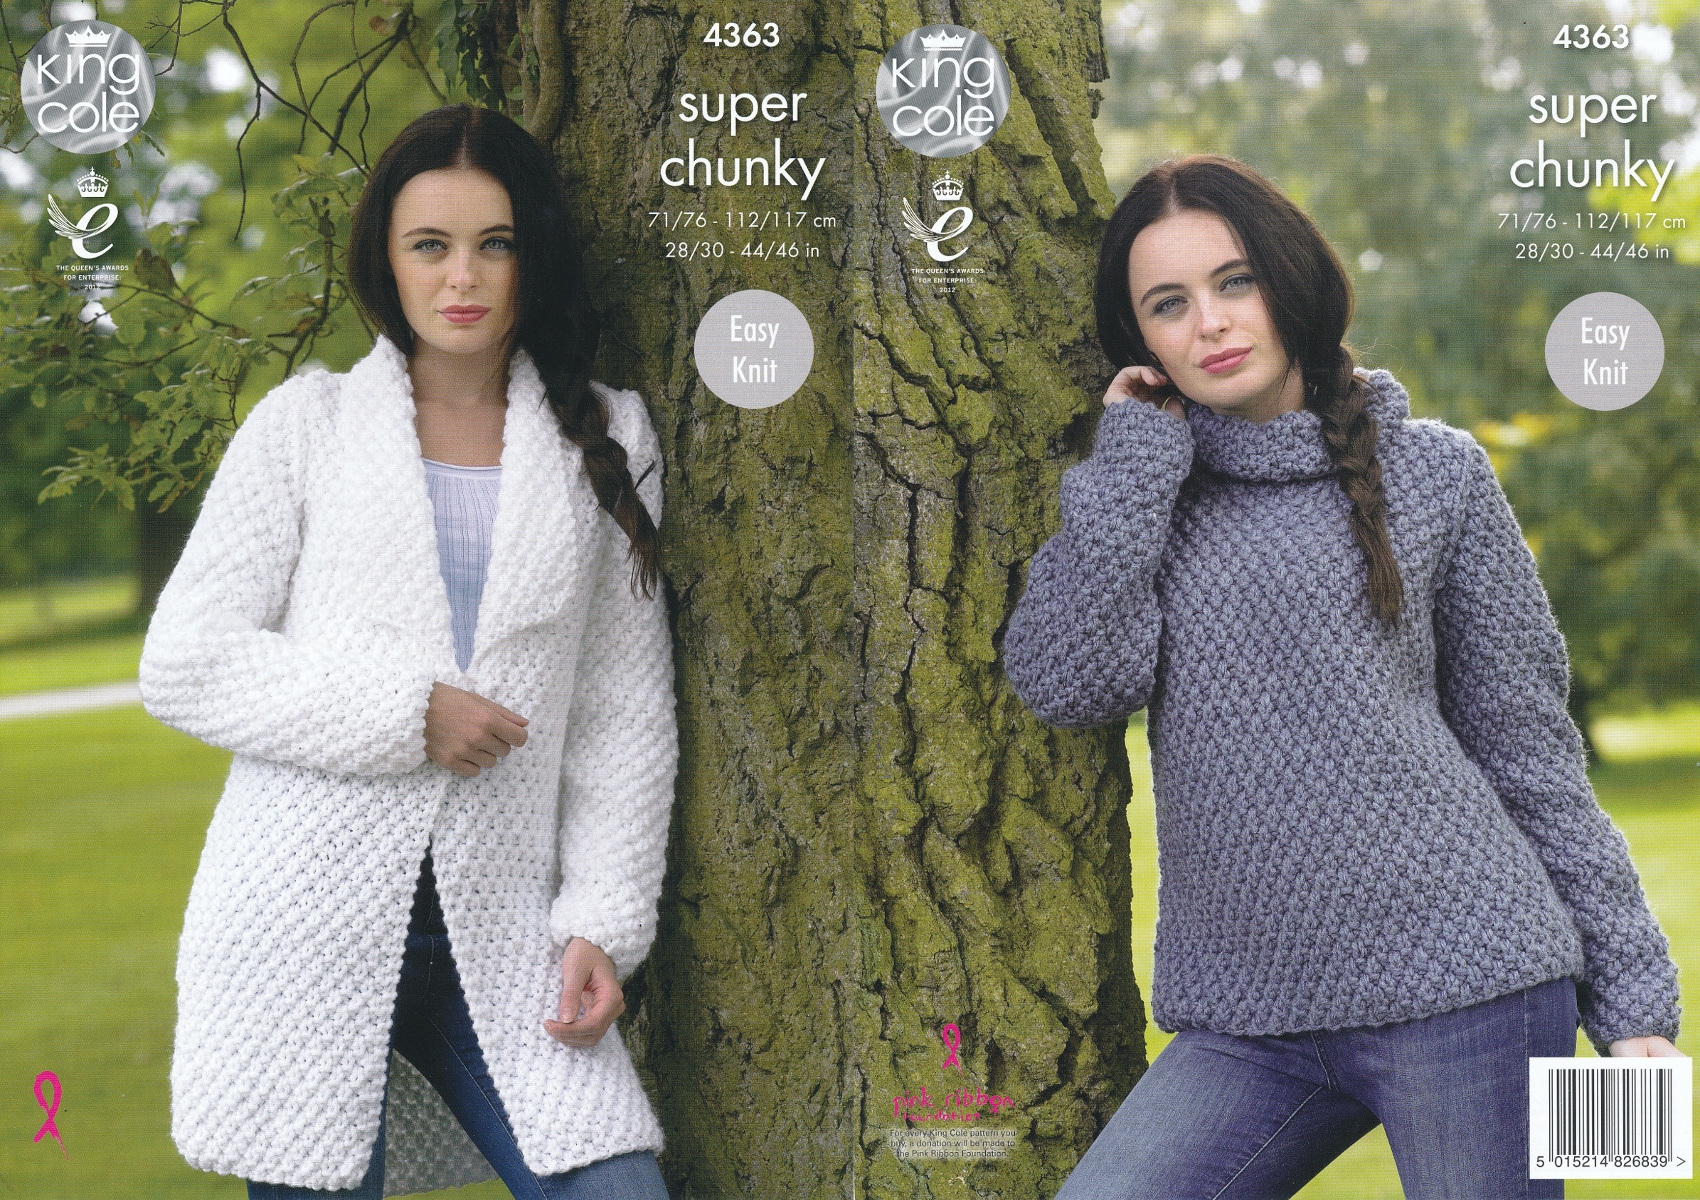 Knitted Coat Patterns Details About Ladies Super Chunky Knitting Pattern King Cole Easy Knit Sweater Jacket 4363